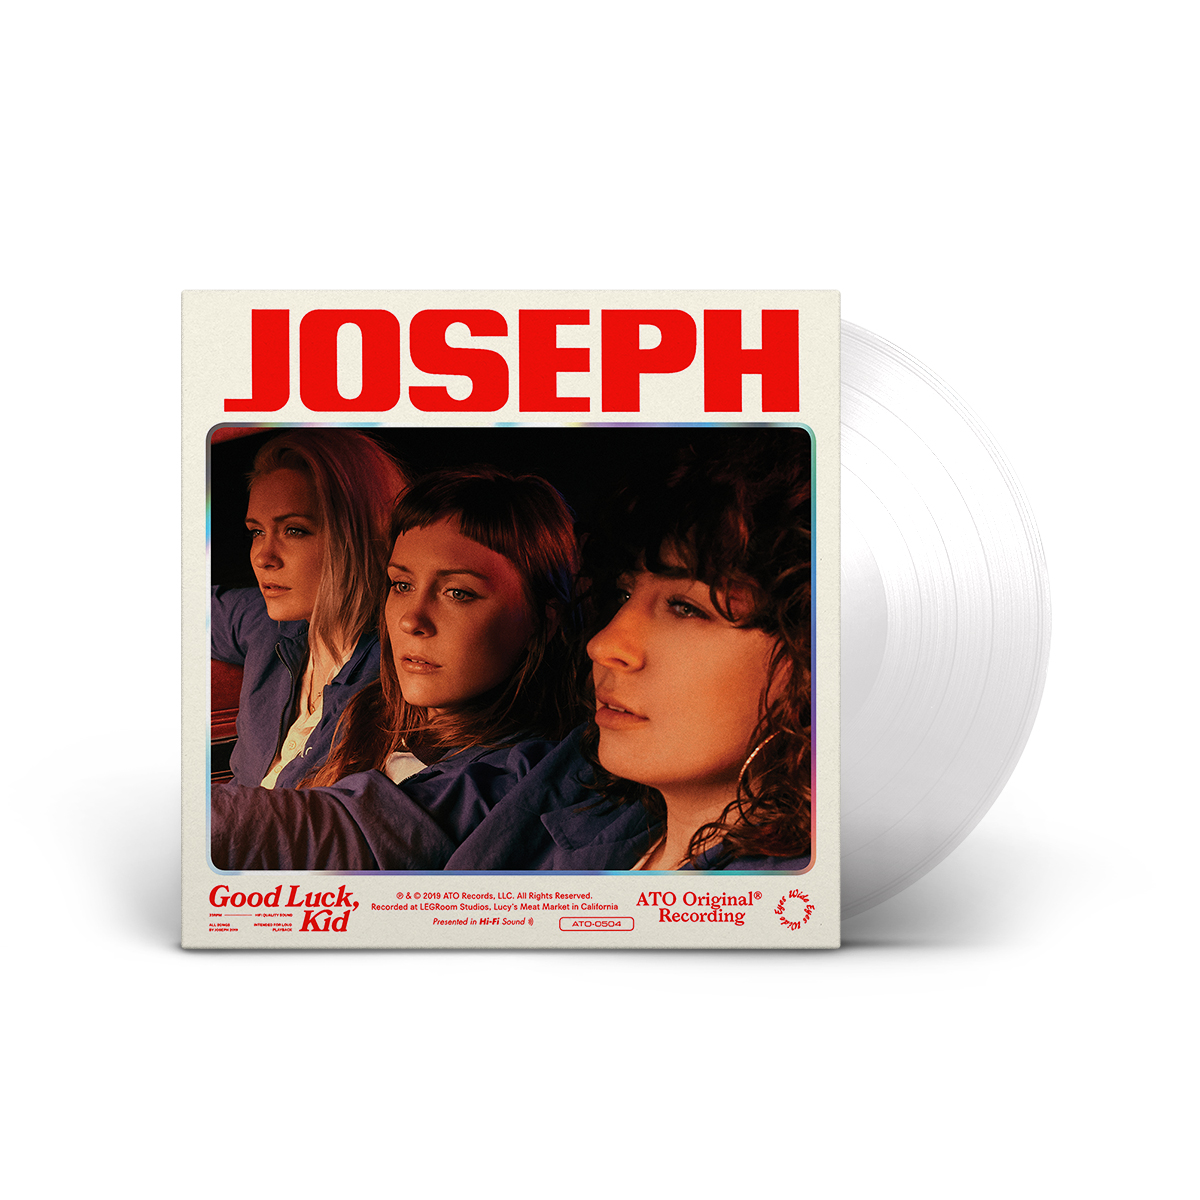 Joseph - Good Luck, Kid LP on Clear Colored Vinyl